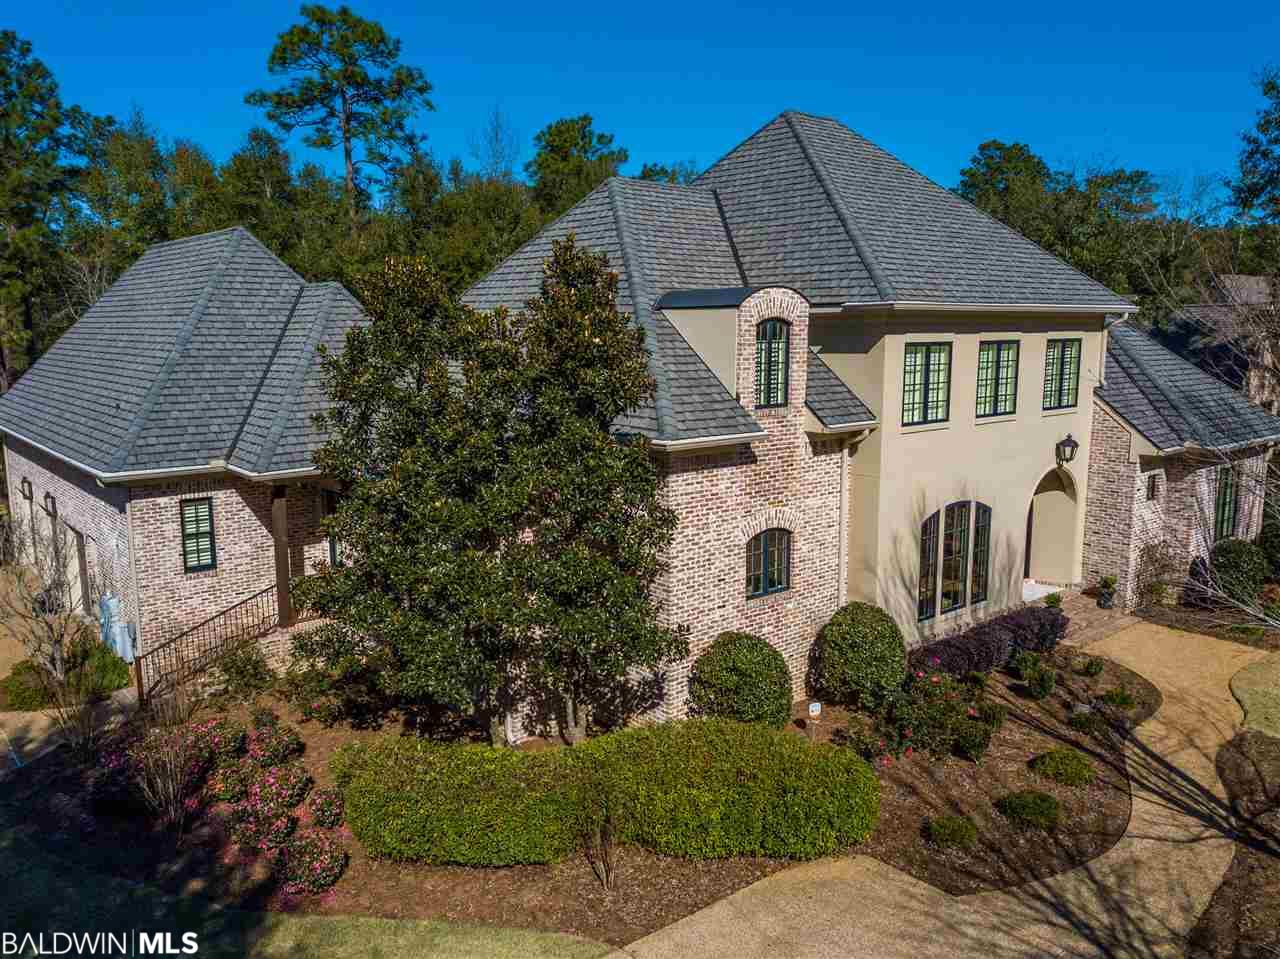 541 Falling Water Blvd, Fairhope, AL 36532